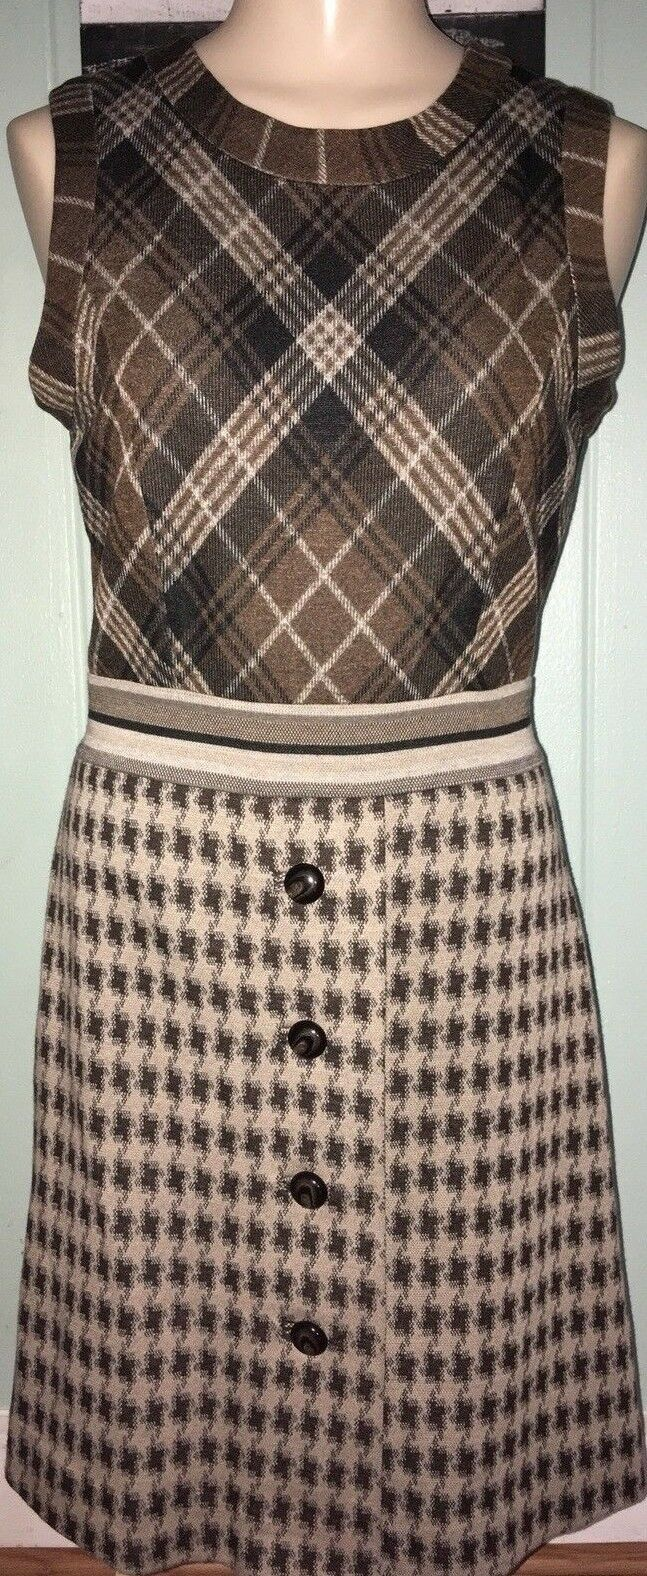 Christian Francis redh Dress Small Brown